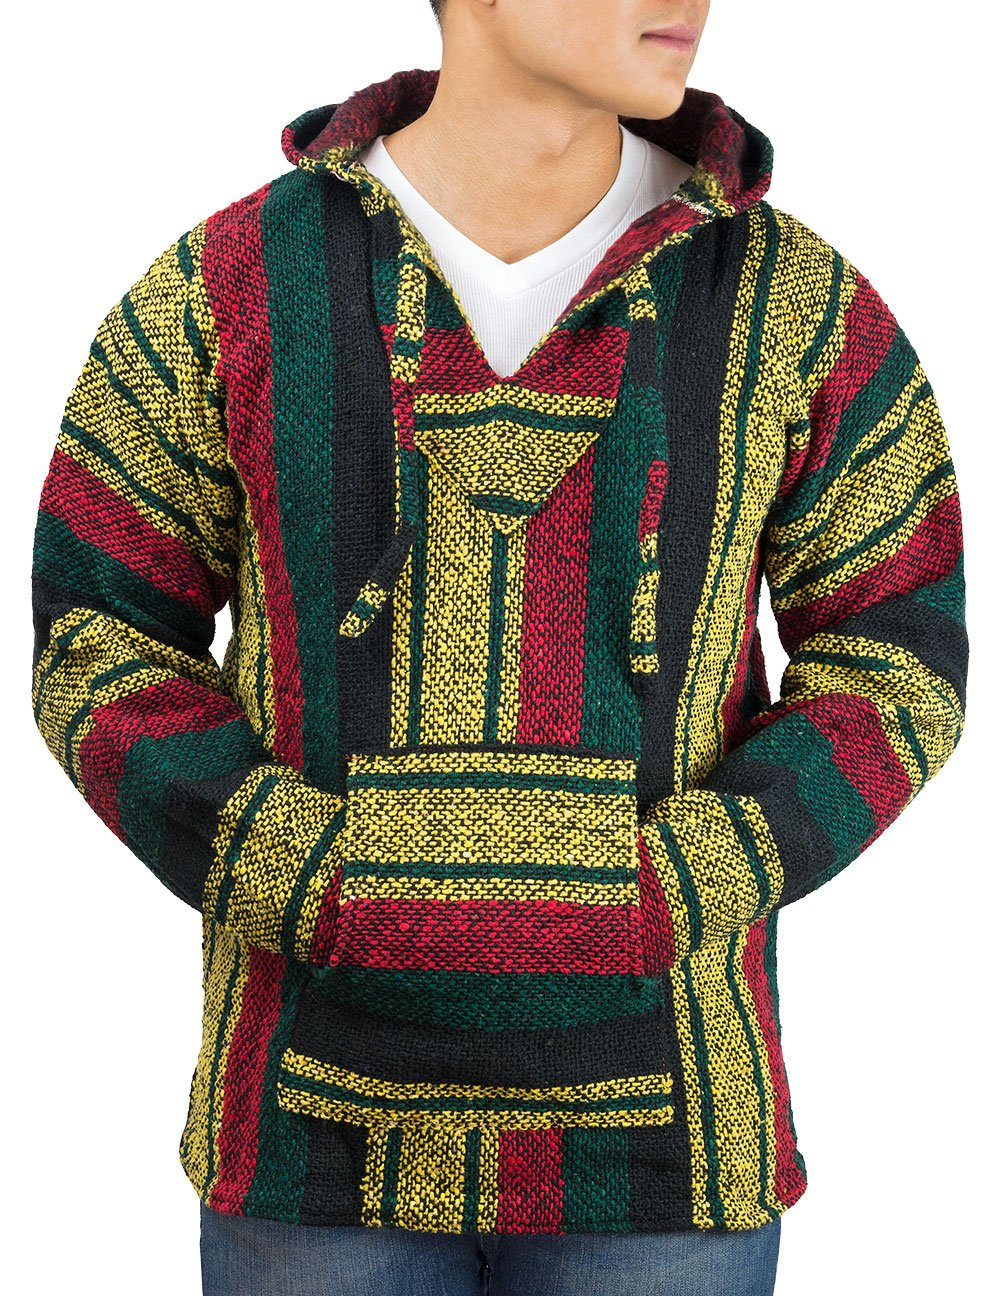 Unisex Jerga/Baja Large Red, Green & Yellow by Clever Pro B00MOUXU3I